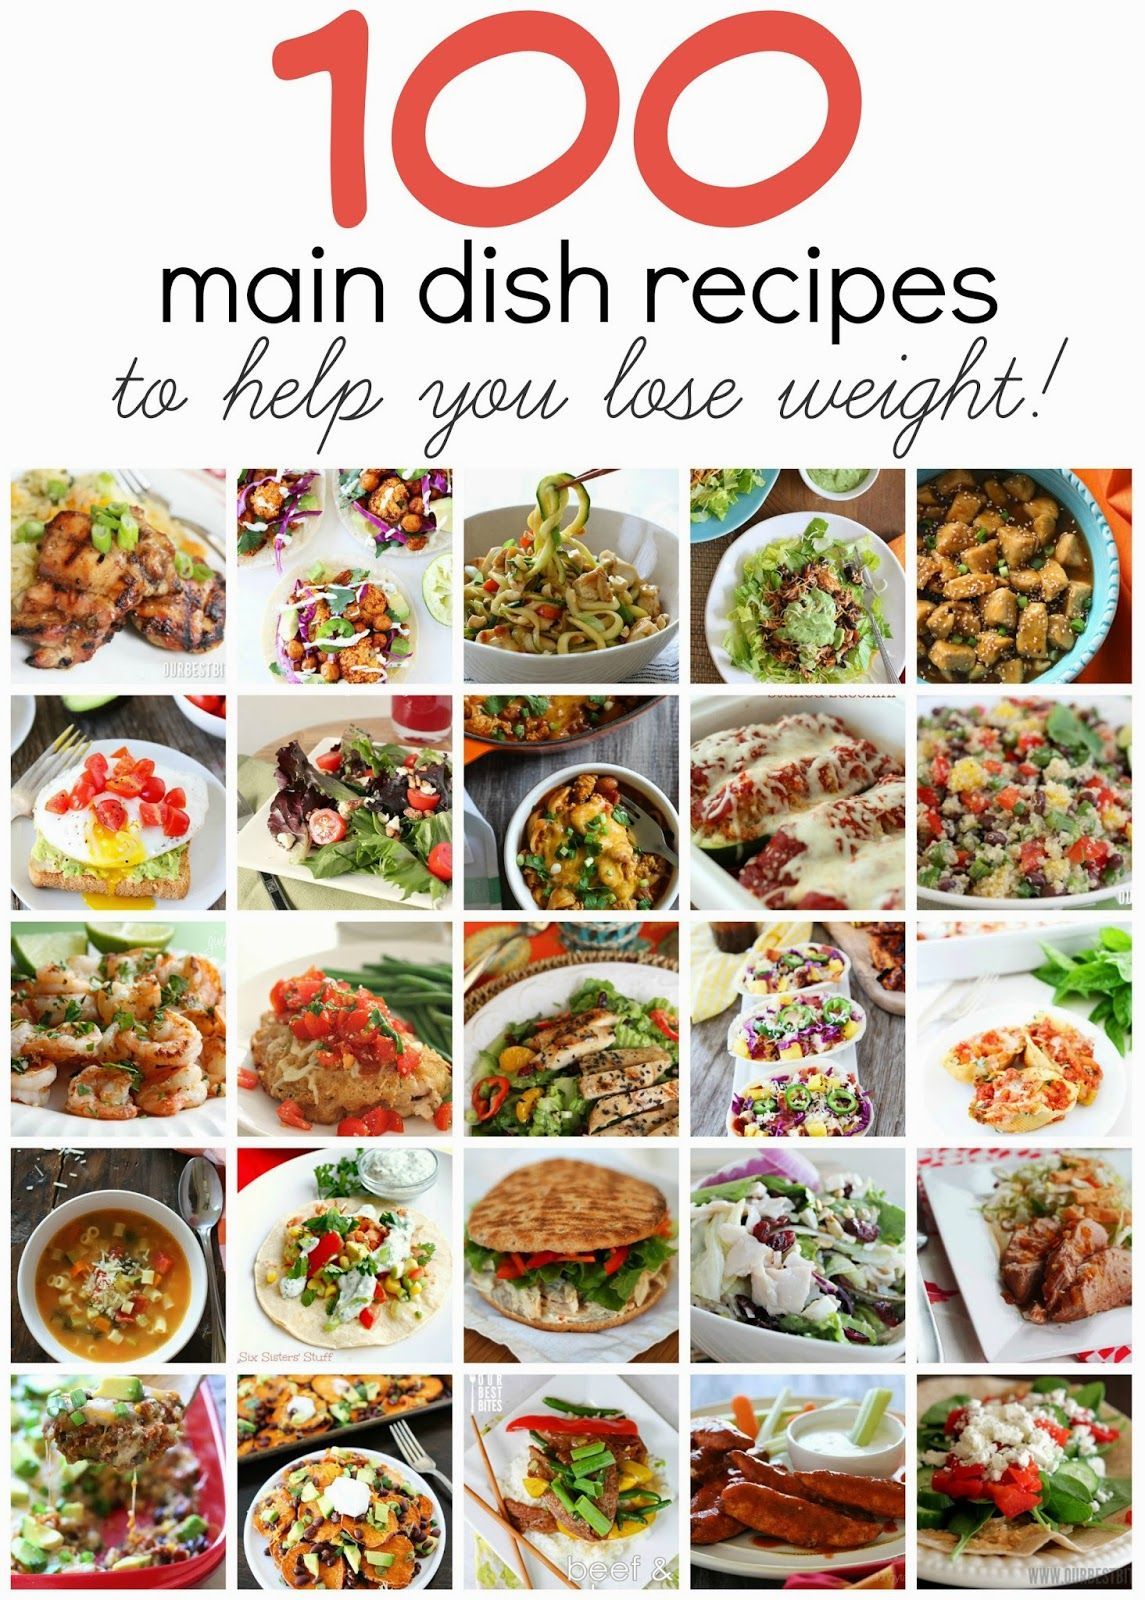 100 Healthy Main Dish Recipes To Help You Lose Weight These Are All So Amazi